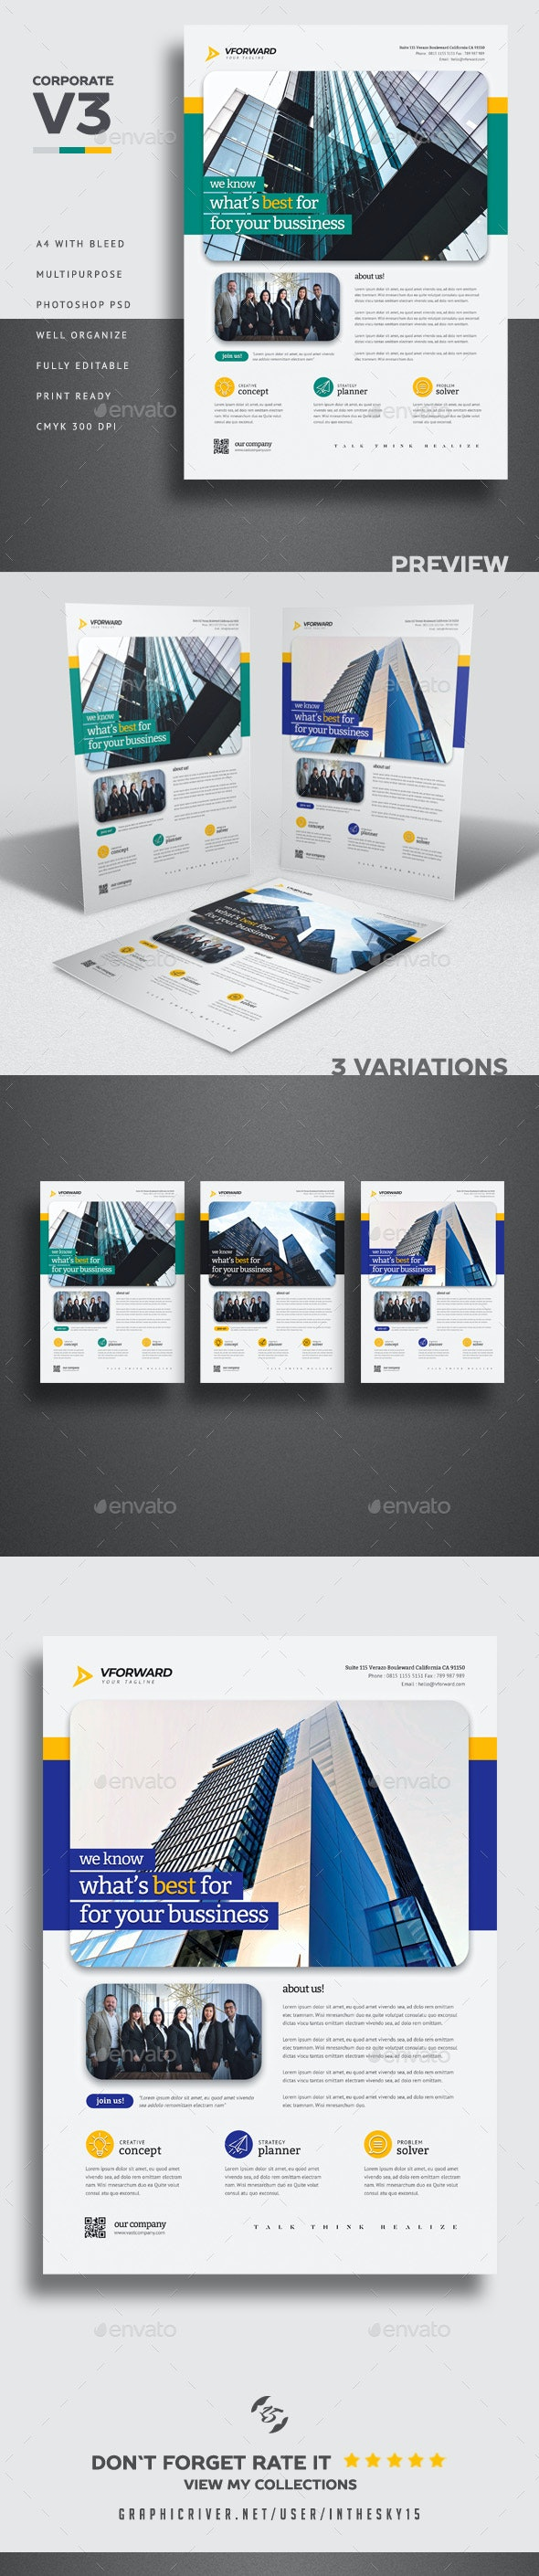 Corporate V3 Flyer Template - Corporate Flyers